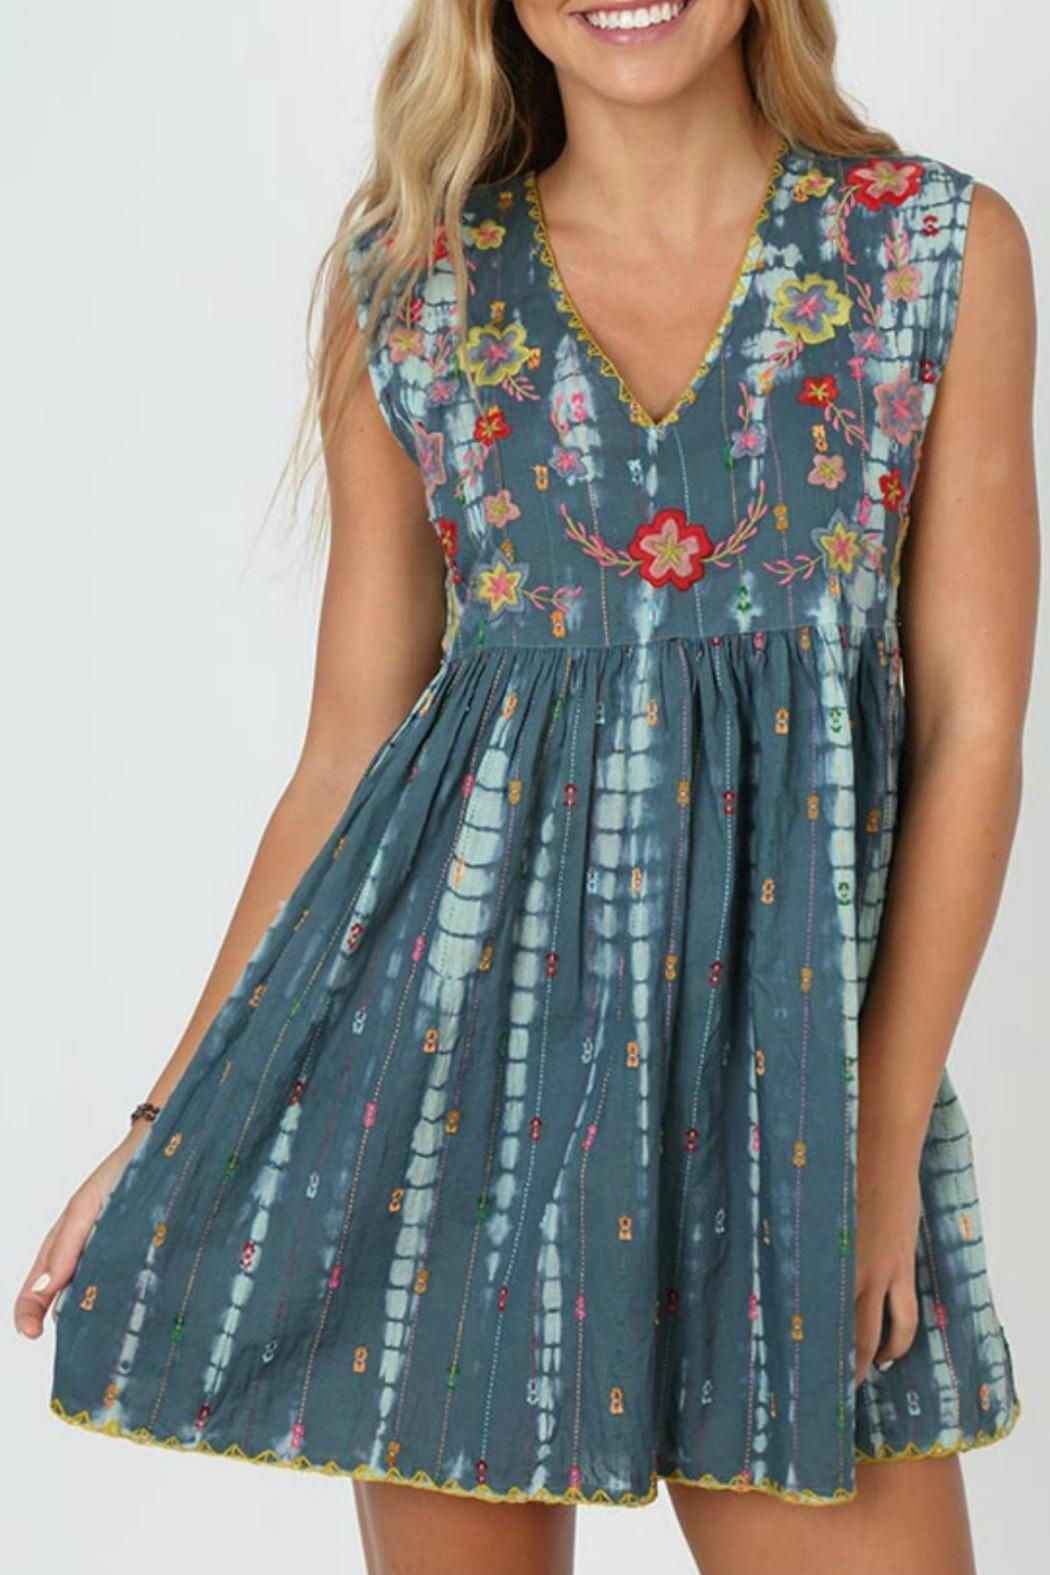 Natural Life Embroidered Tie-Dye Dress - Main Image